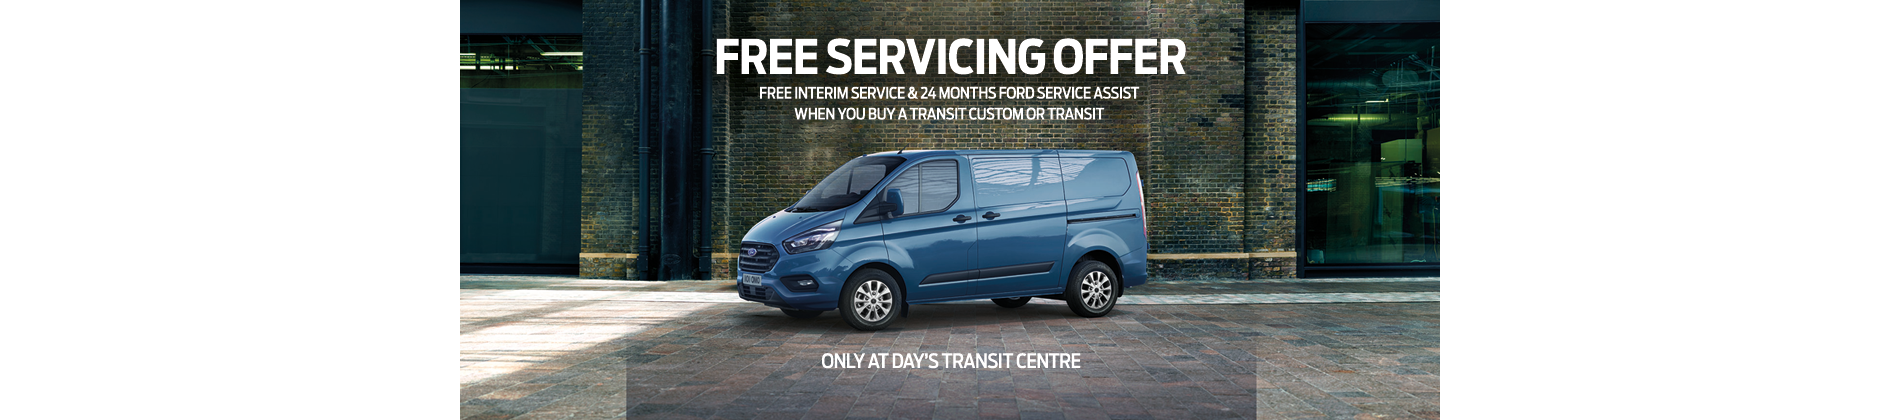 Transit Custom servicing offer Swansea